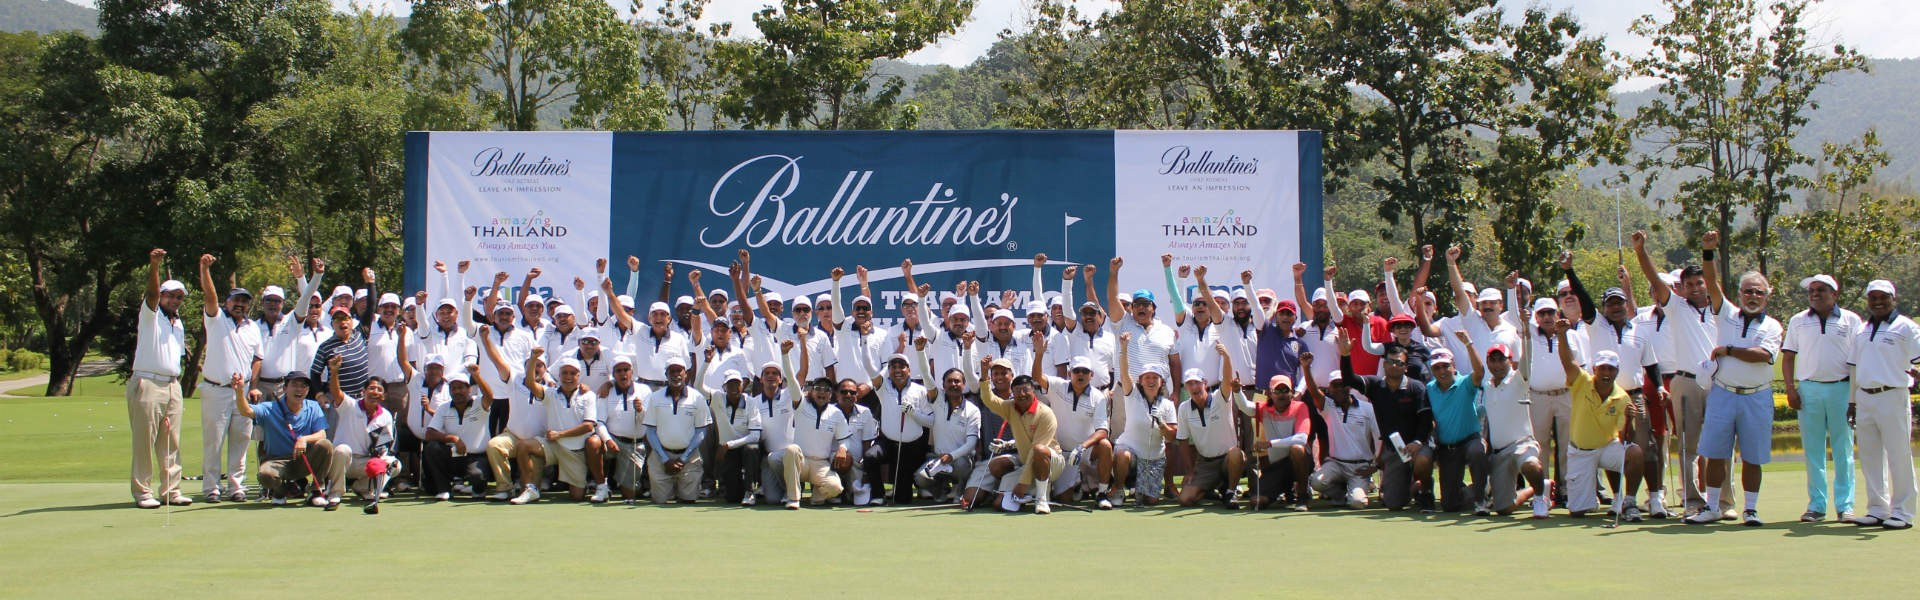 https://teamam.golftripz.com/wp-content/uploads/2017/06/Ballantines-team-am-group-picture-1920x600.jpg